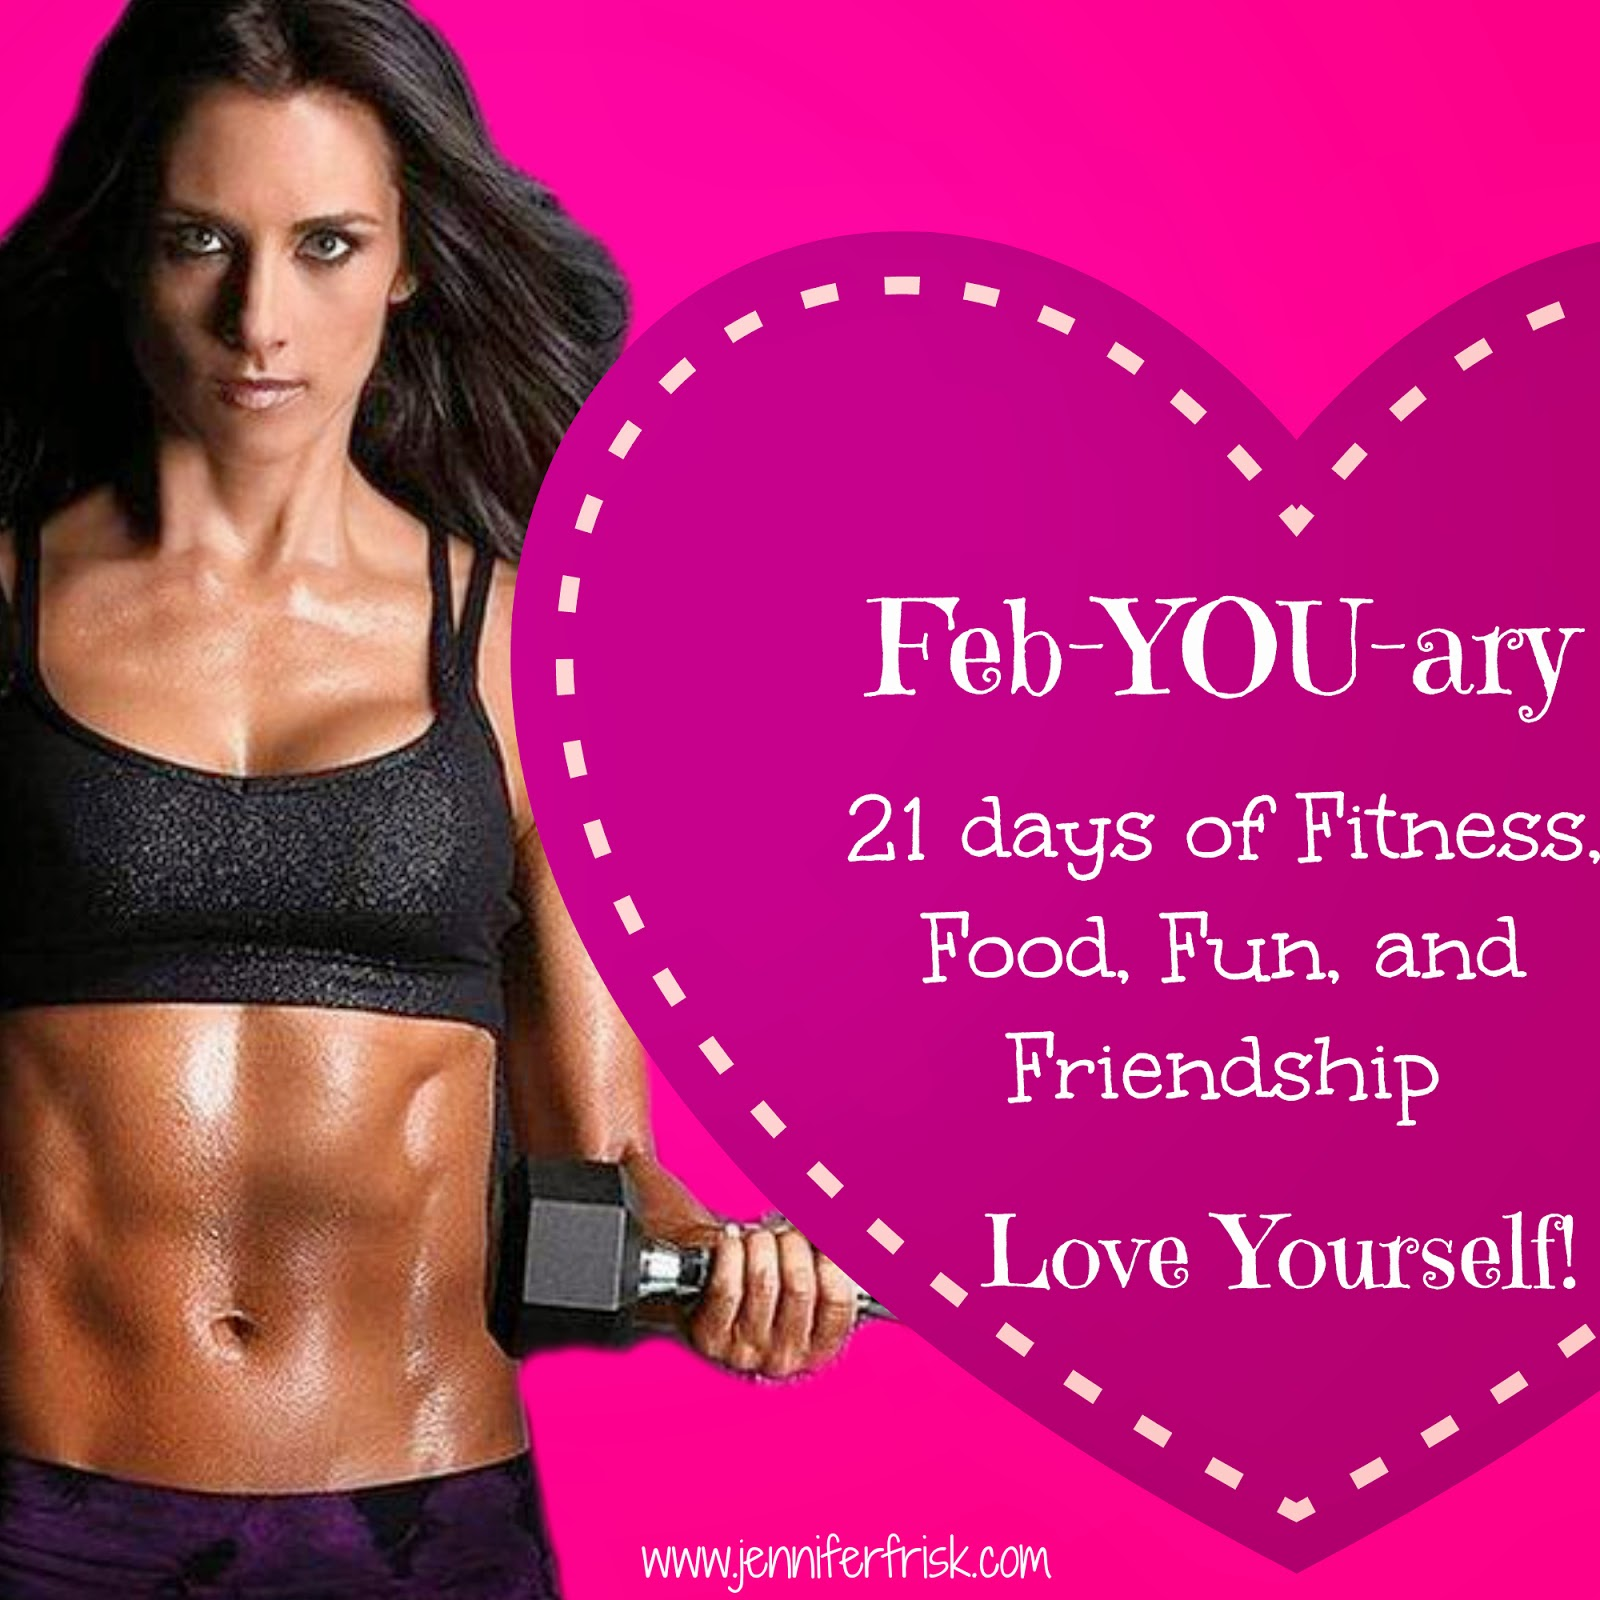 21 Days of meal planning, fitness, fun, and friendships